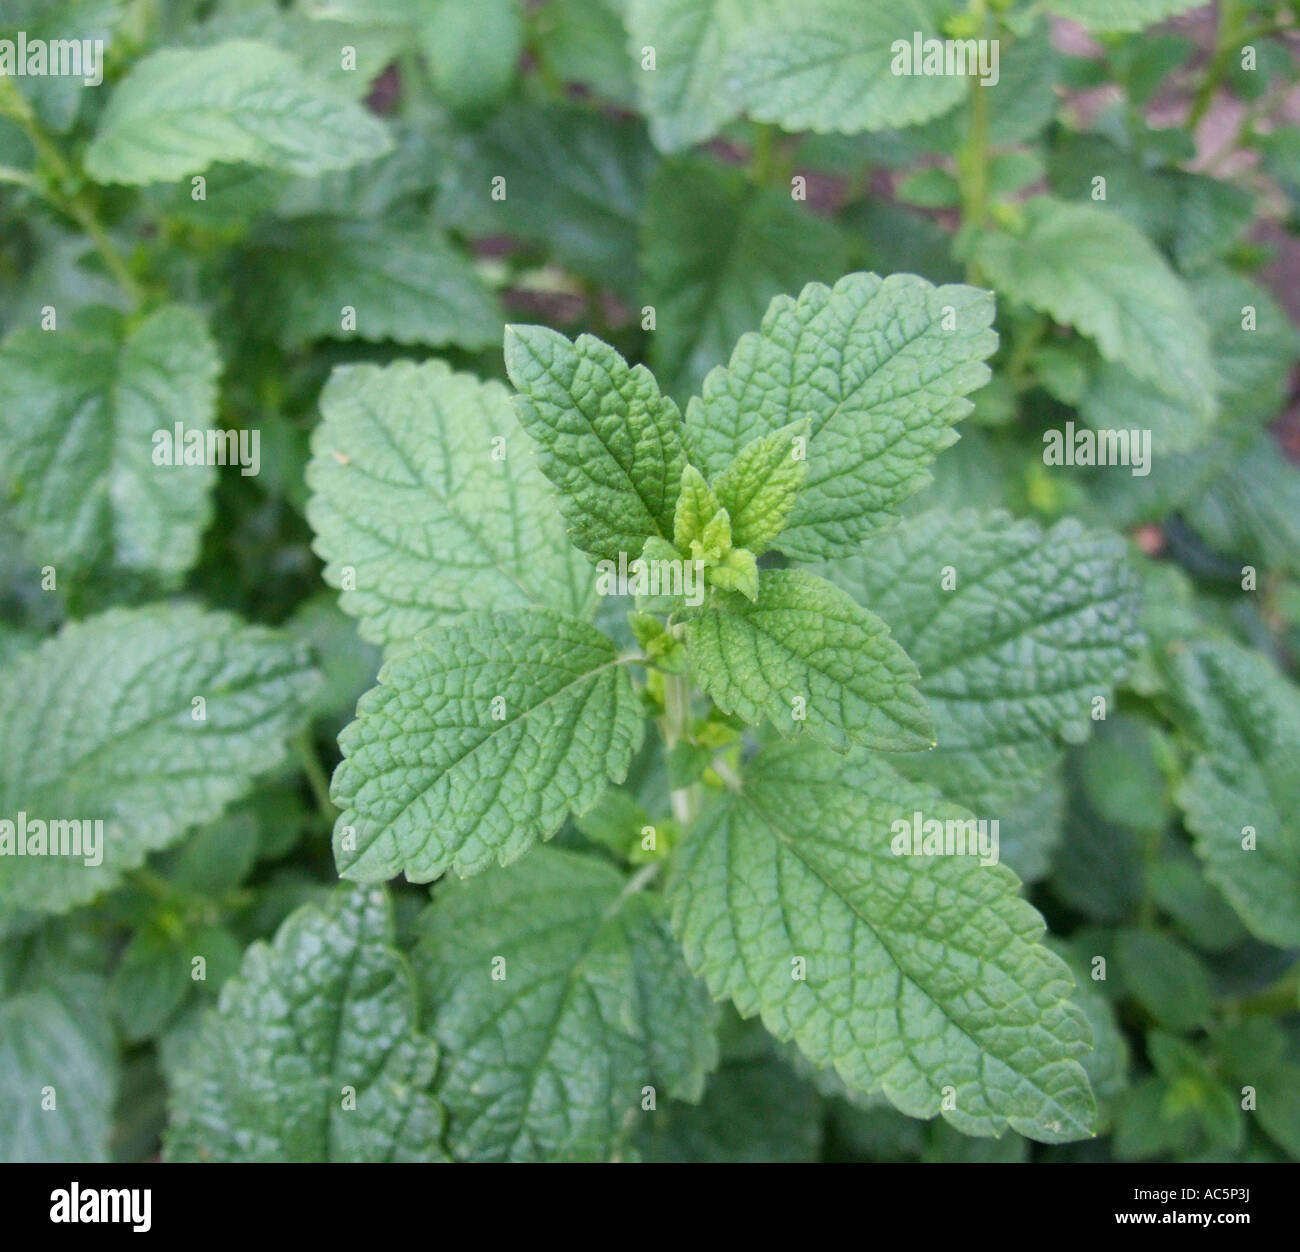 Leaves Lemon balm elevated view close up Stock Photo